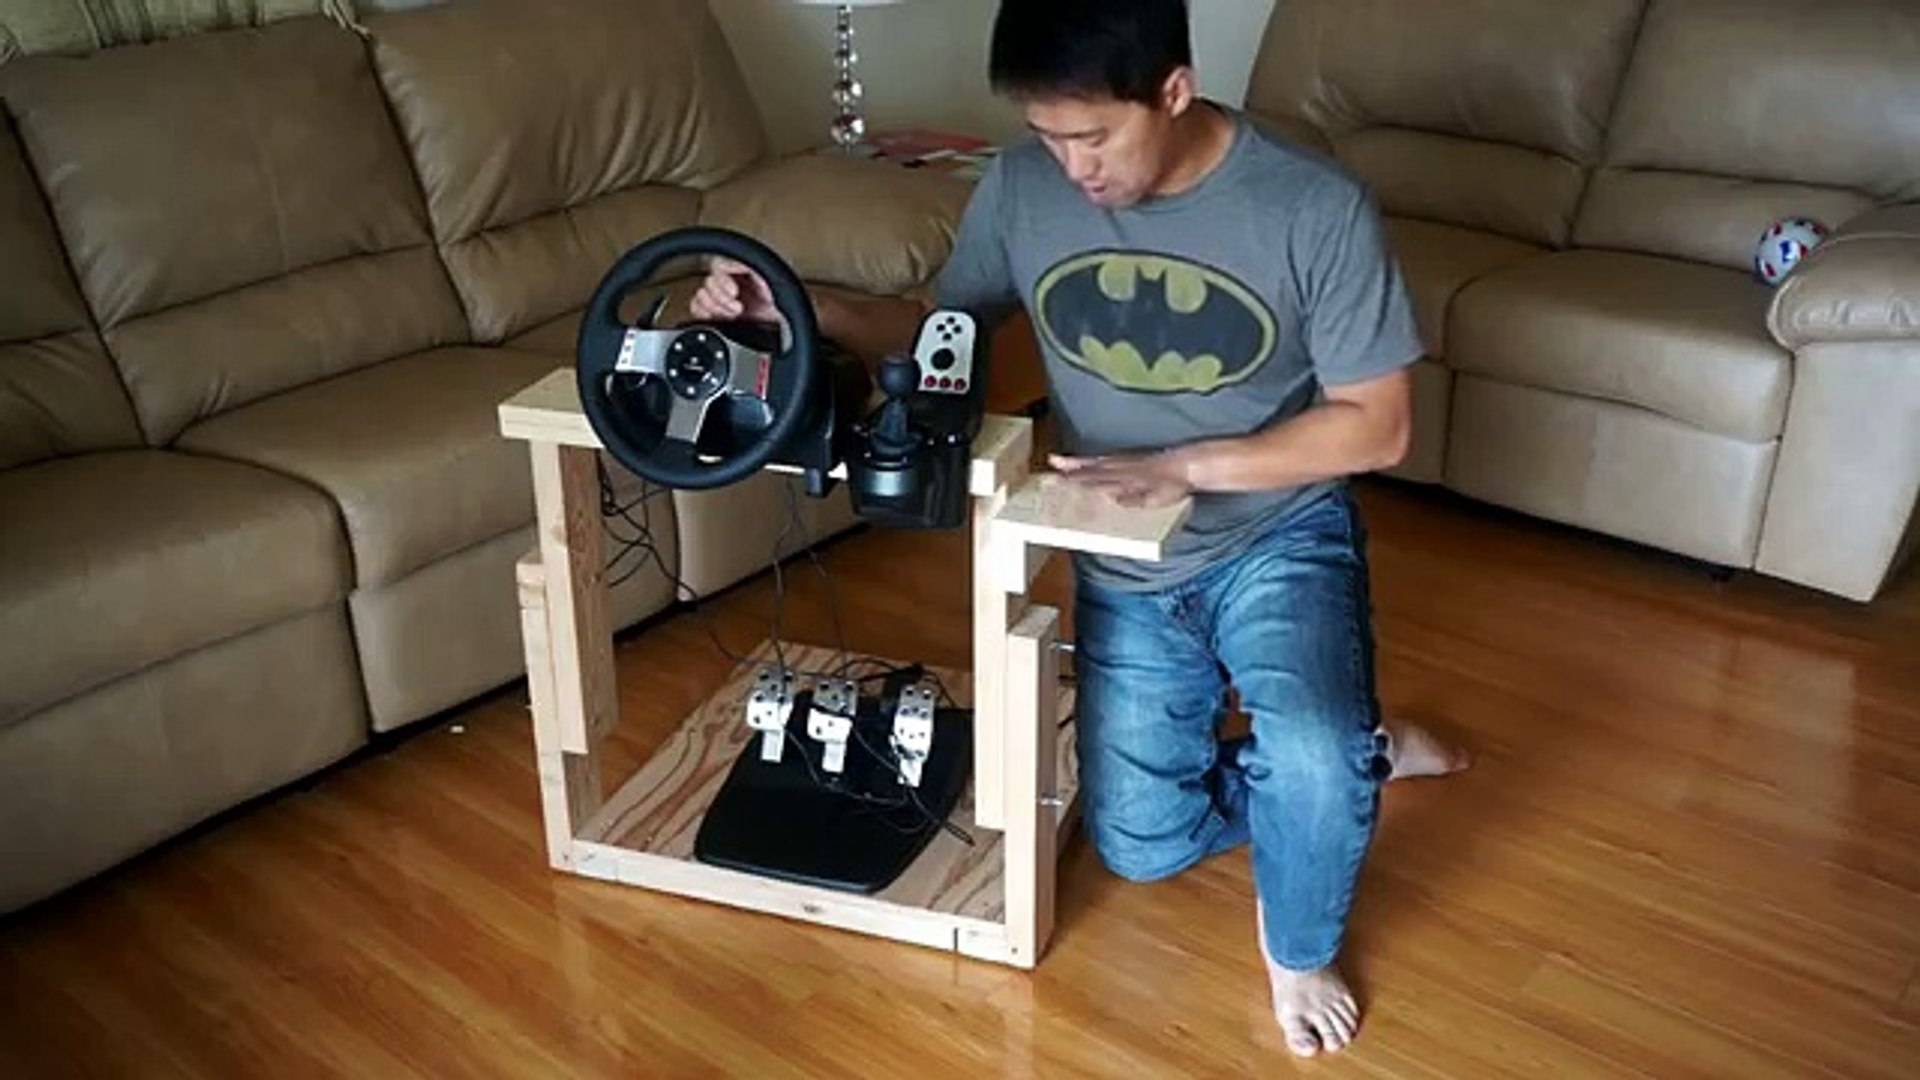 How To Make The Best Homemade Logitech G27 Gaming Wheel Stand In The World Video Dailymotion